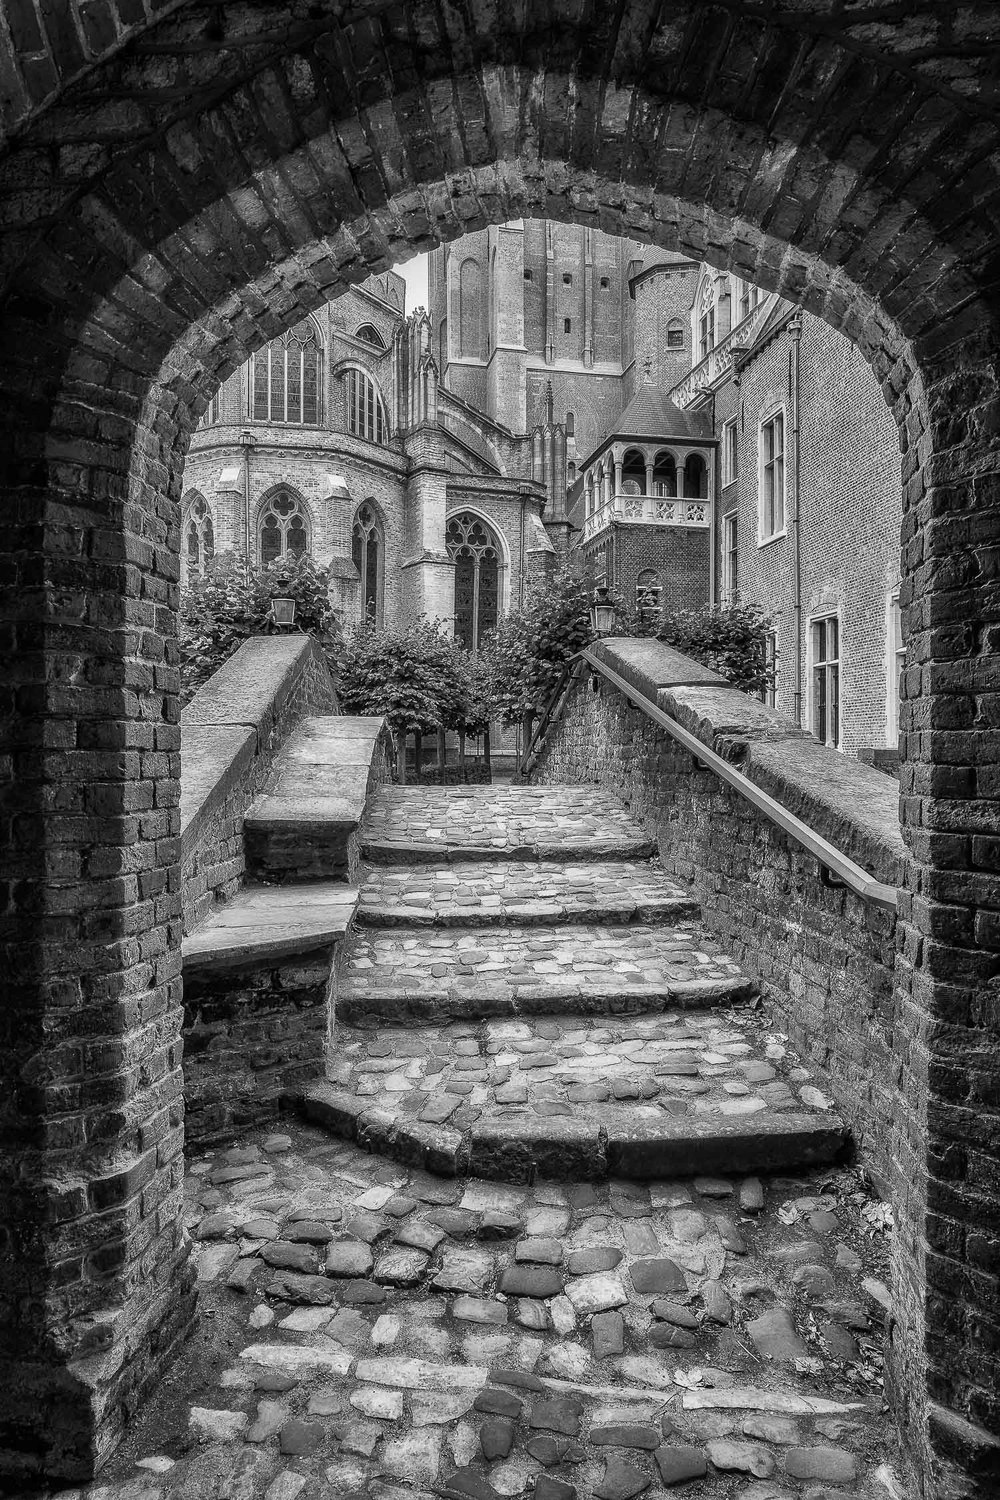 A classic view looking through an archway onto a bridge and onwards towards historic buildings in Bruges, Belgium.